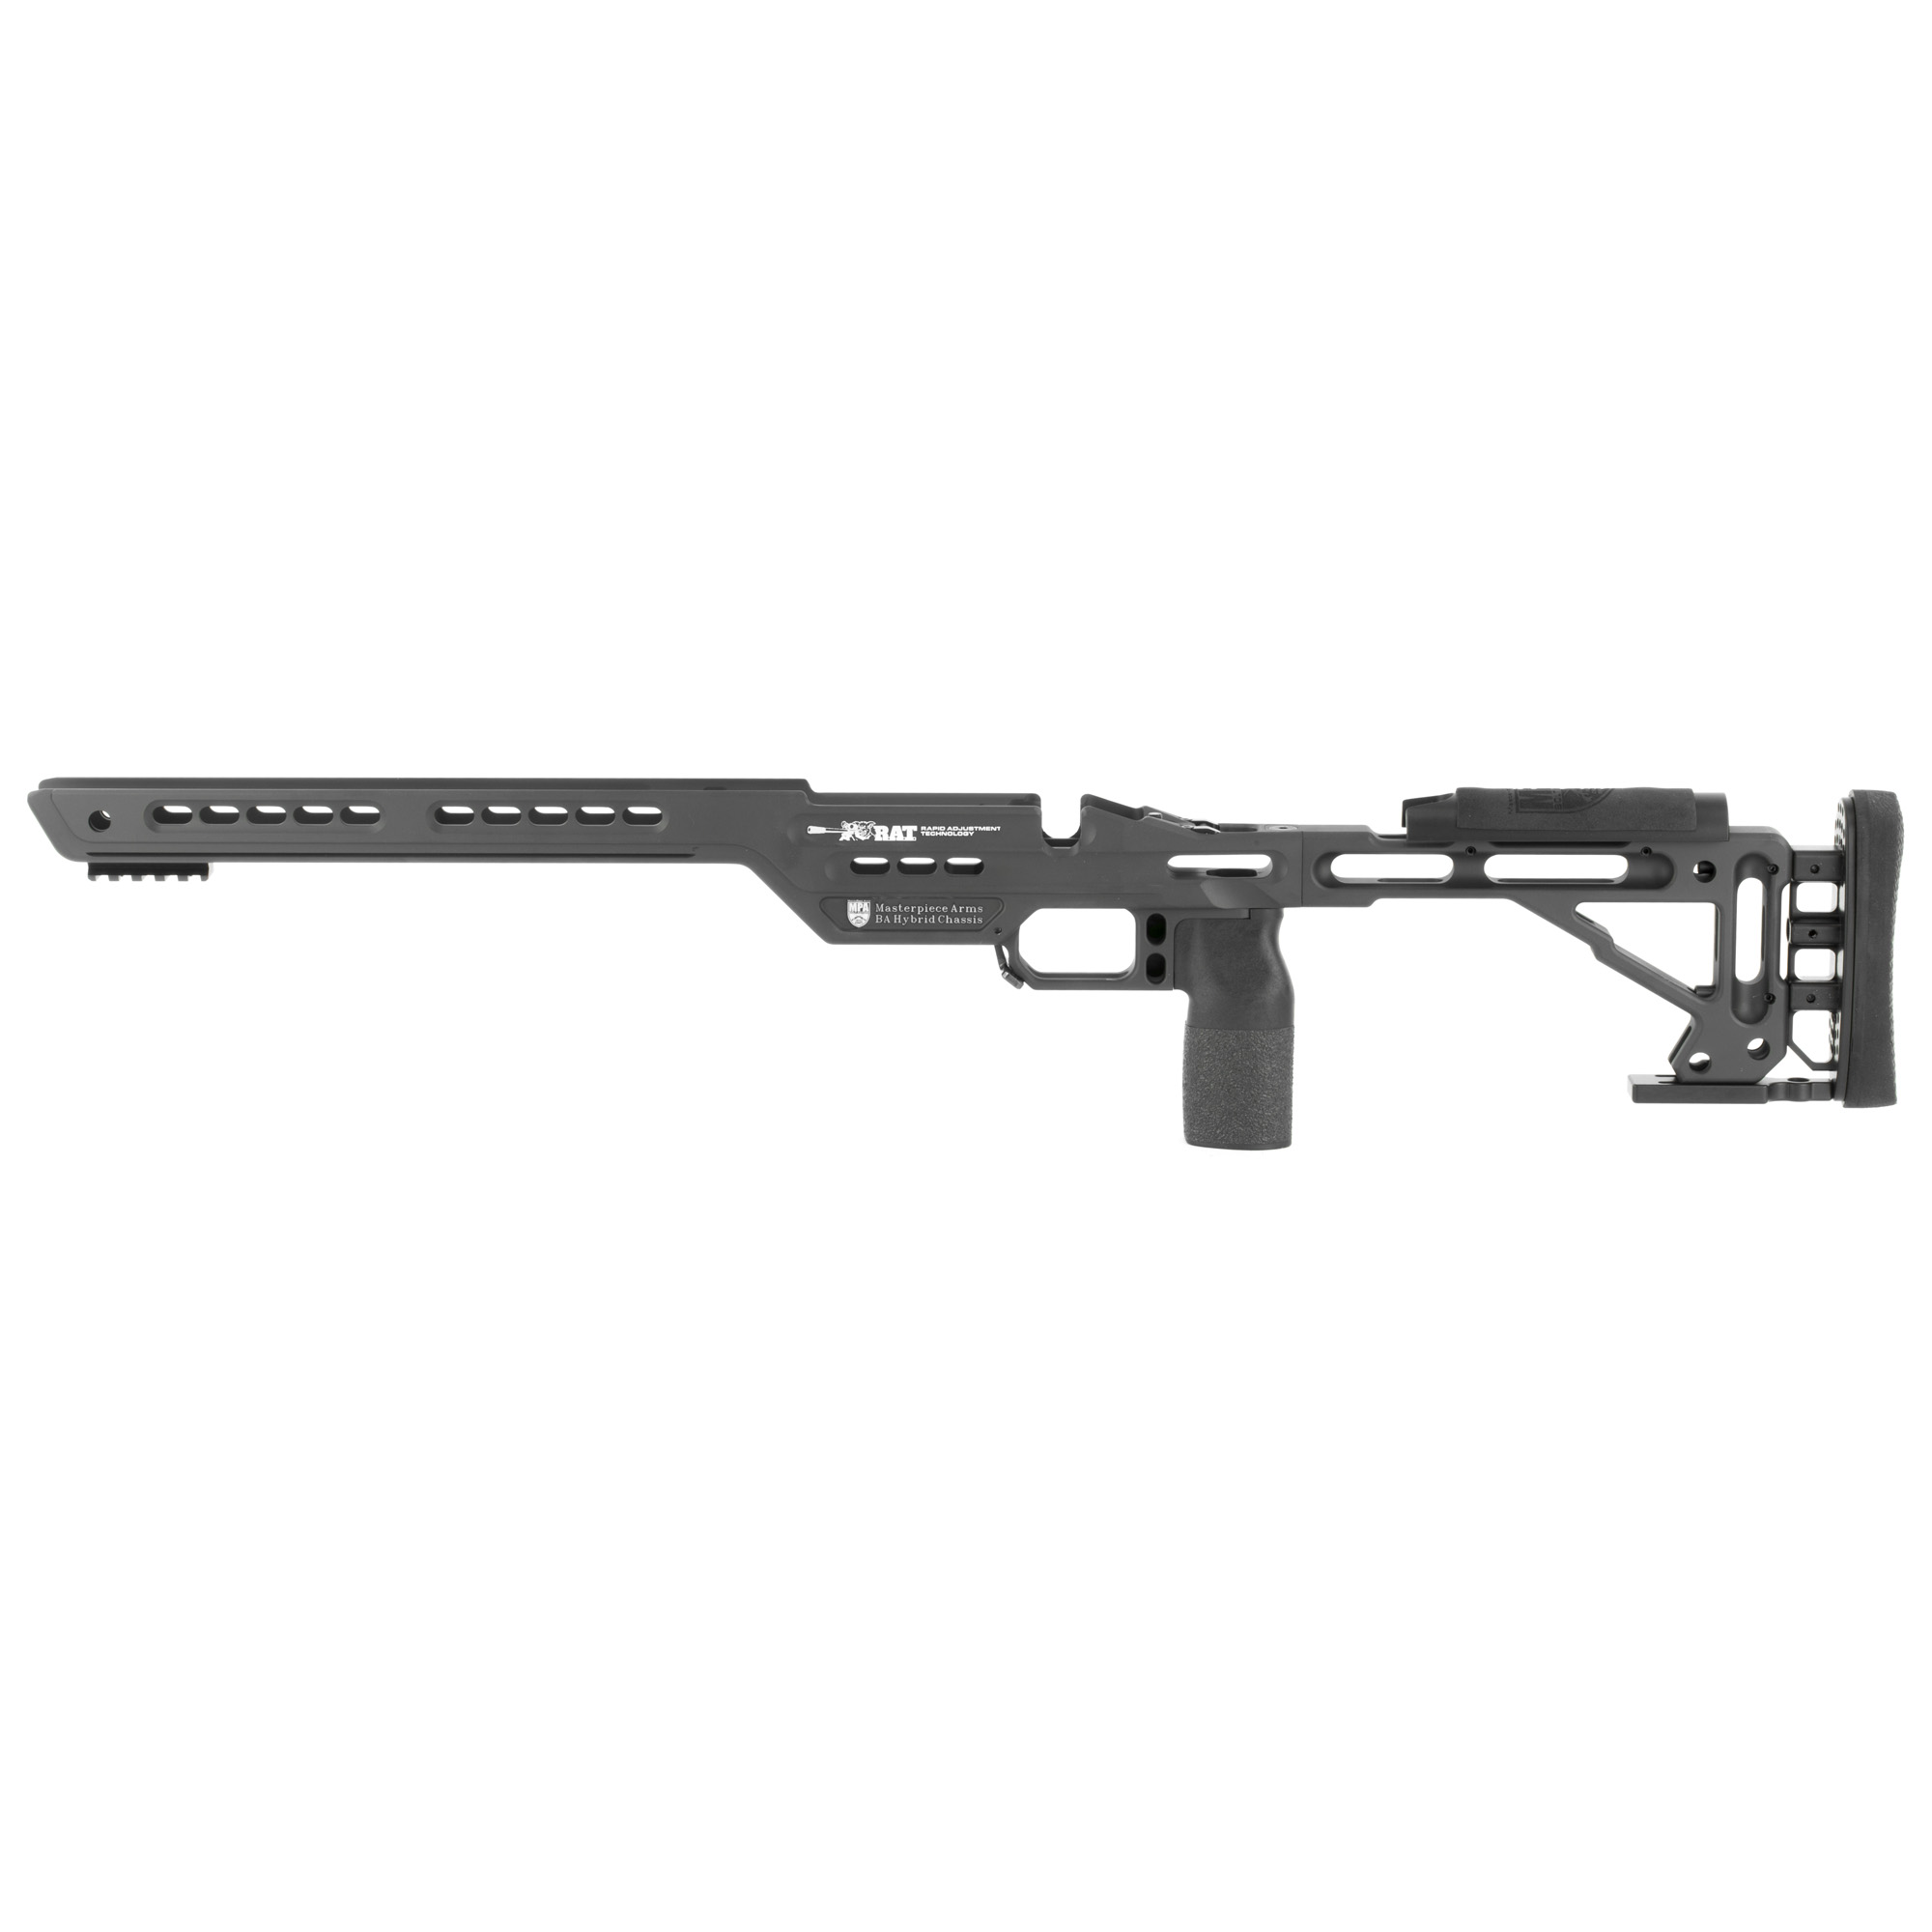 "MasterPiece Arms MPA BA Hybrid Chassis system provides a super precision platform for the Remington 700 Short Action. This is a hybrid version of their highly successful BA Chassis System. The Hybrid is designed to give the shooter a variety of different applications in which his/her rifle can be used through the use of this specially designed Chassis. For the shooter who wants to use all the many benefits this design offers for a hunting application"" it provides the reduced weight needed to all usage in a variety of different hunting scenarios. Whether your hunting white tail from your local tree stand or blind"" or hiking deep into the back country"" the weight of this chassis will not be a limiting factor. For those who want to use this for F-Class (FTR) that has a weight restriction on the overall weight of the rifle assembly"" this ultra-precision shooter can put more weight other areas of the rifle to provide them their desired accuracy performance without being hamstrung due to the weight of the stock. The PRS Shooter can also utilize all the ""game changing"" technology they include in this chassis design. One incredible enhancement that can be added to this chassis design is the MPA Weight Tuning System. This gives the shooter the ability to take this 3.5 lb. chassis and increase the weight up to 6.5 lbs."" and/or altering the balance point of the rifle assembly. Its truly a Hybrid design."